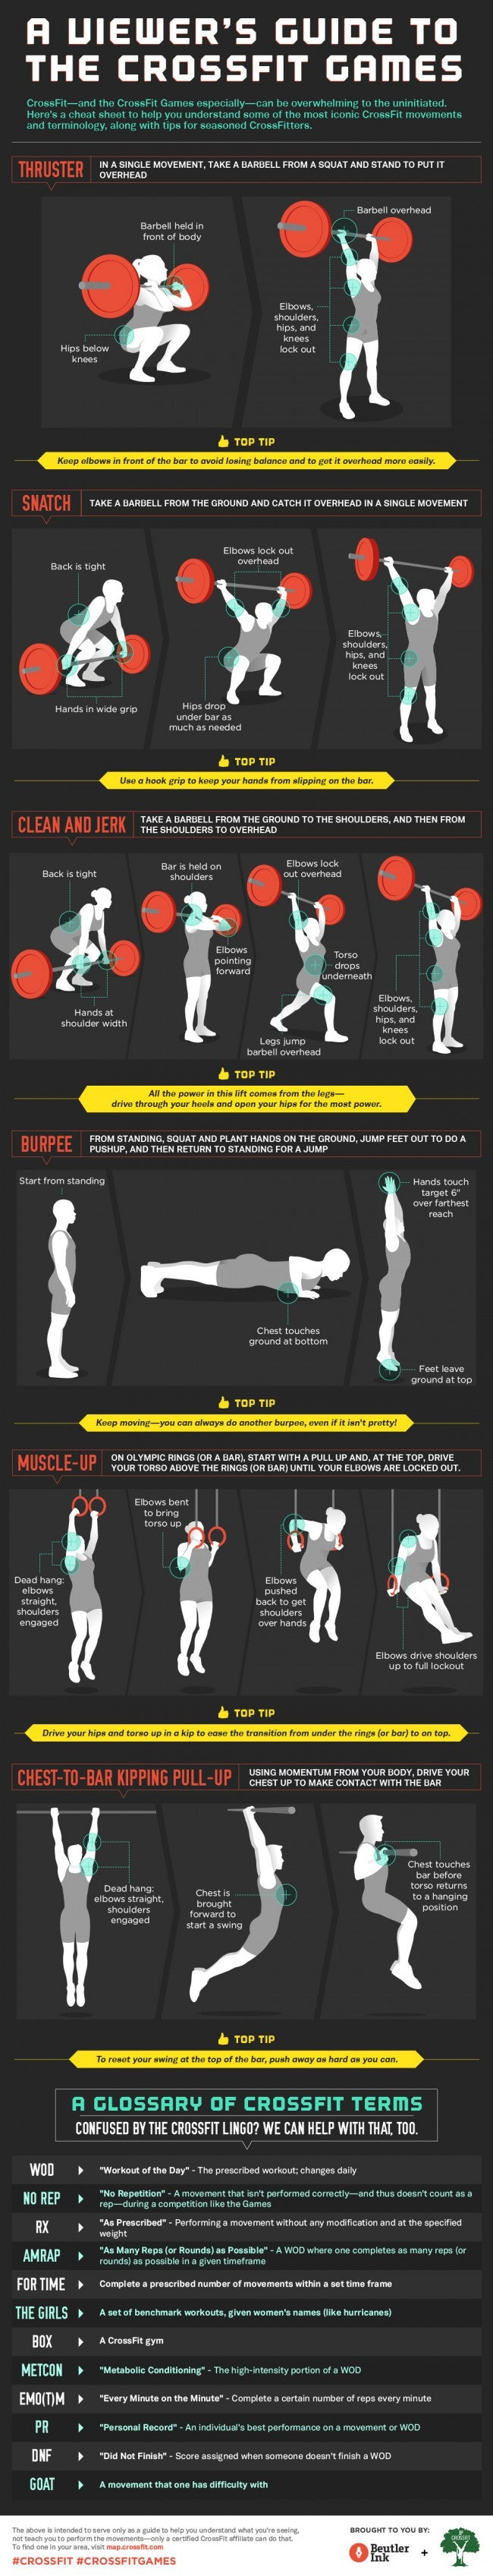 Infographic a non crossfitters guide to crossfit